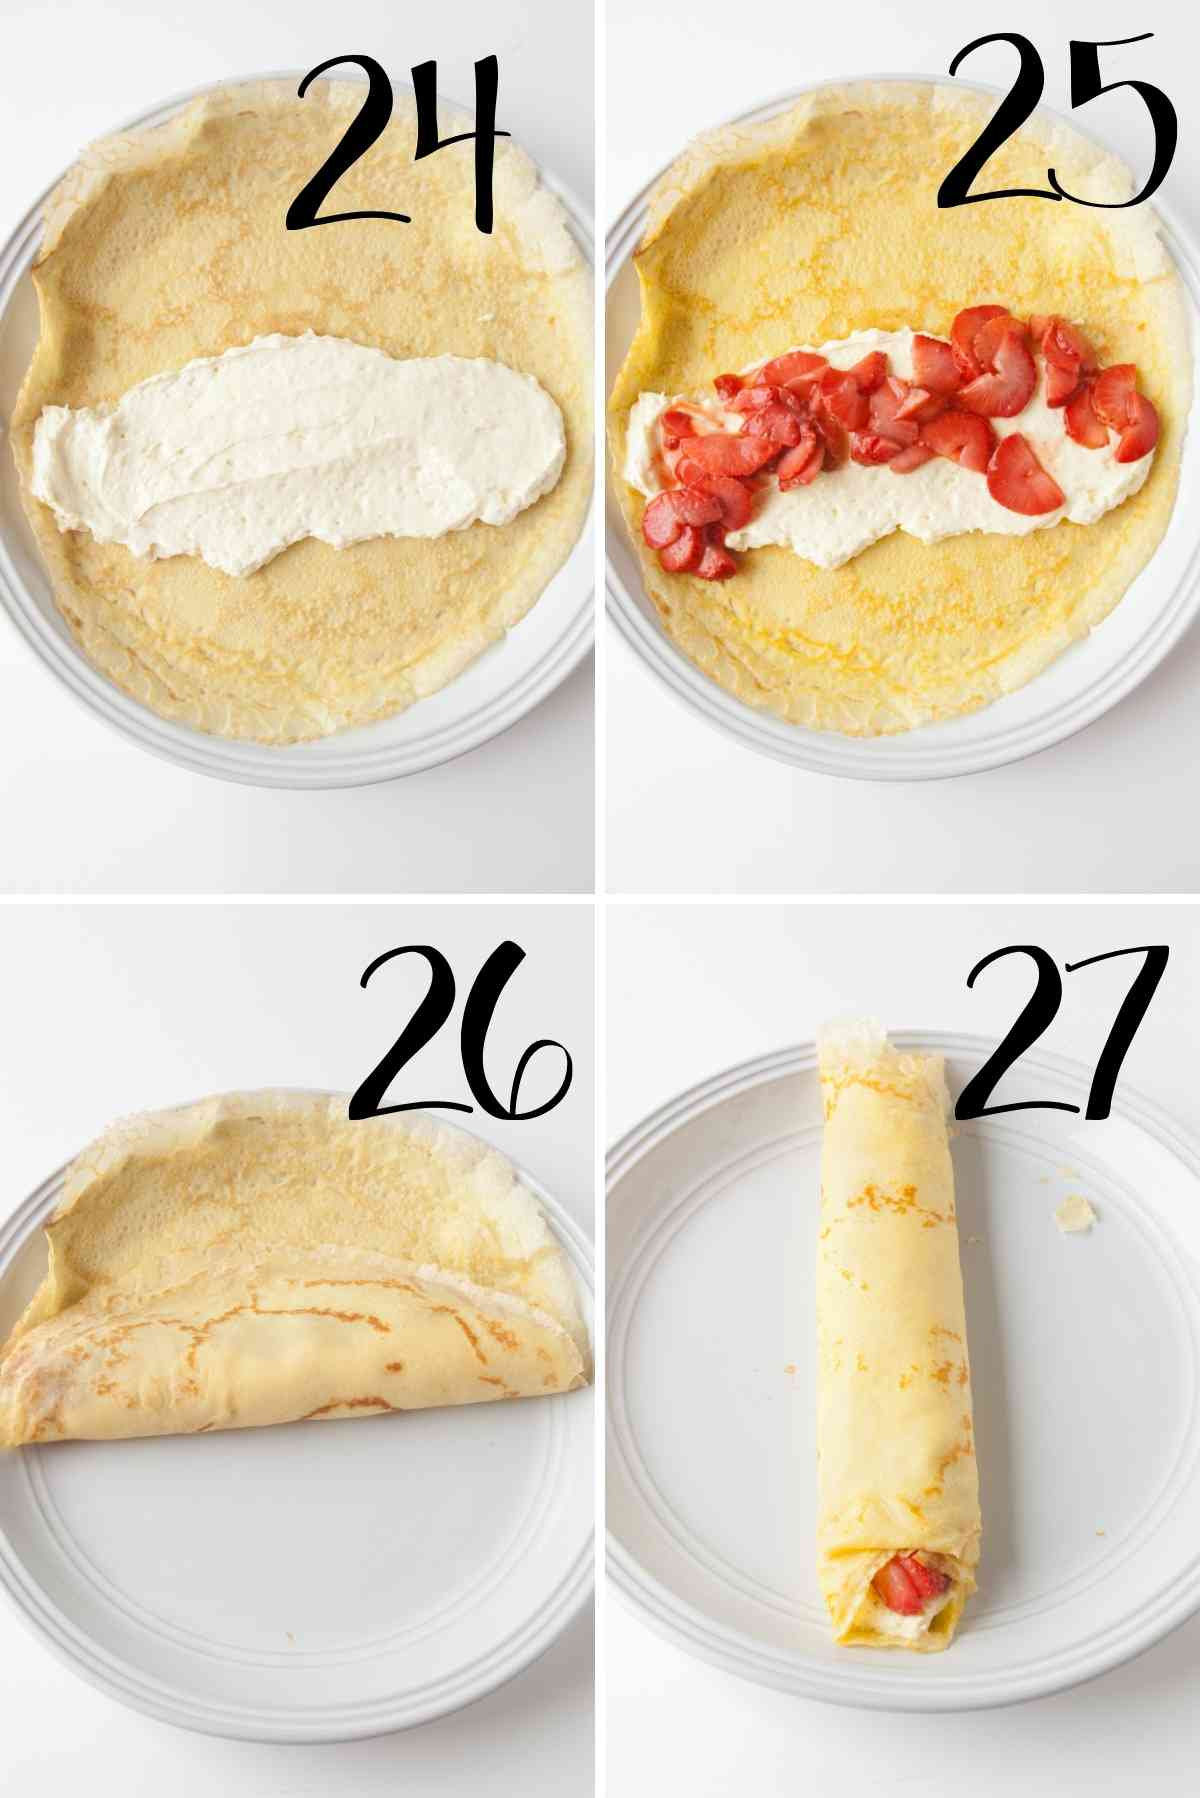 Filling and rolling up crepes.